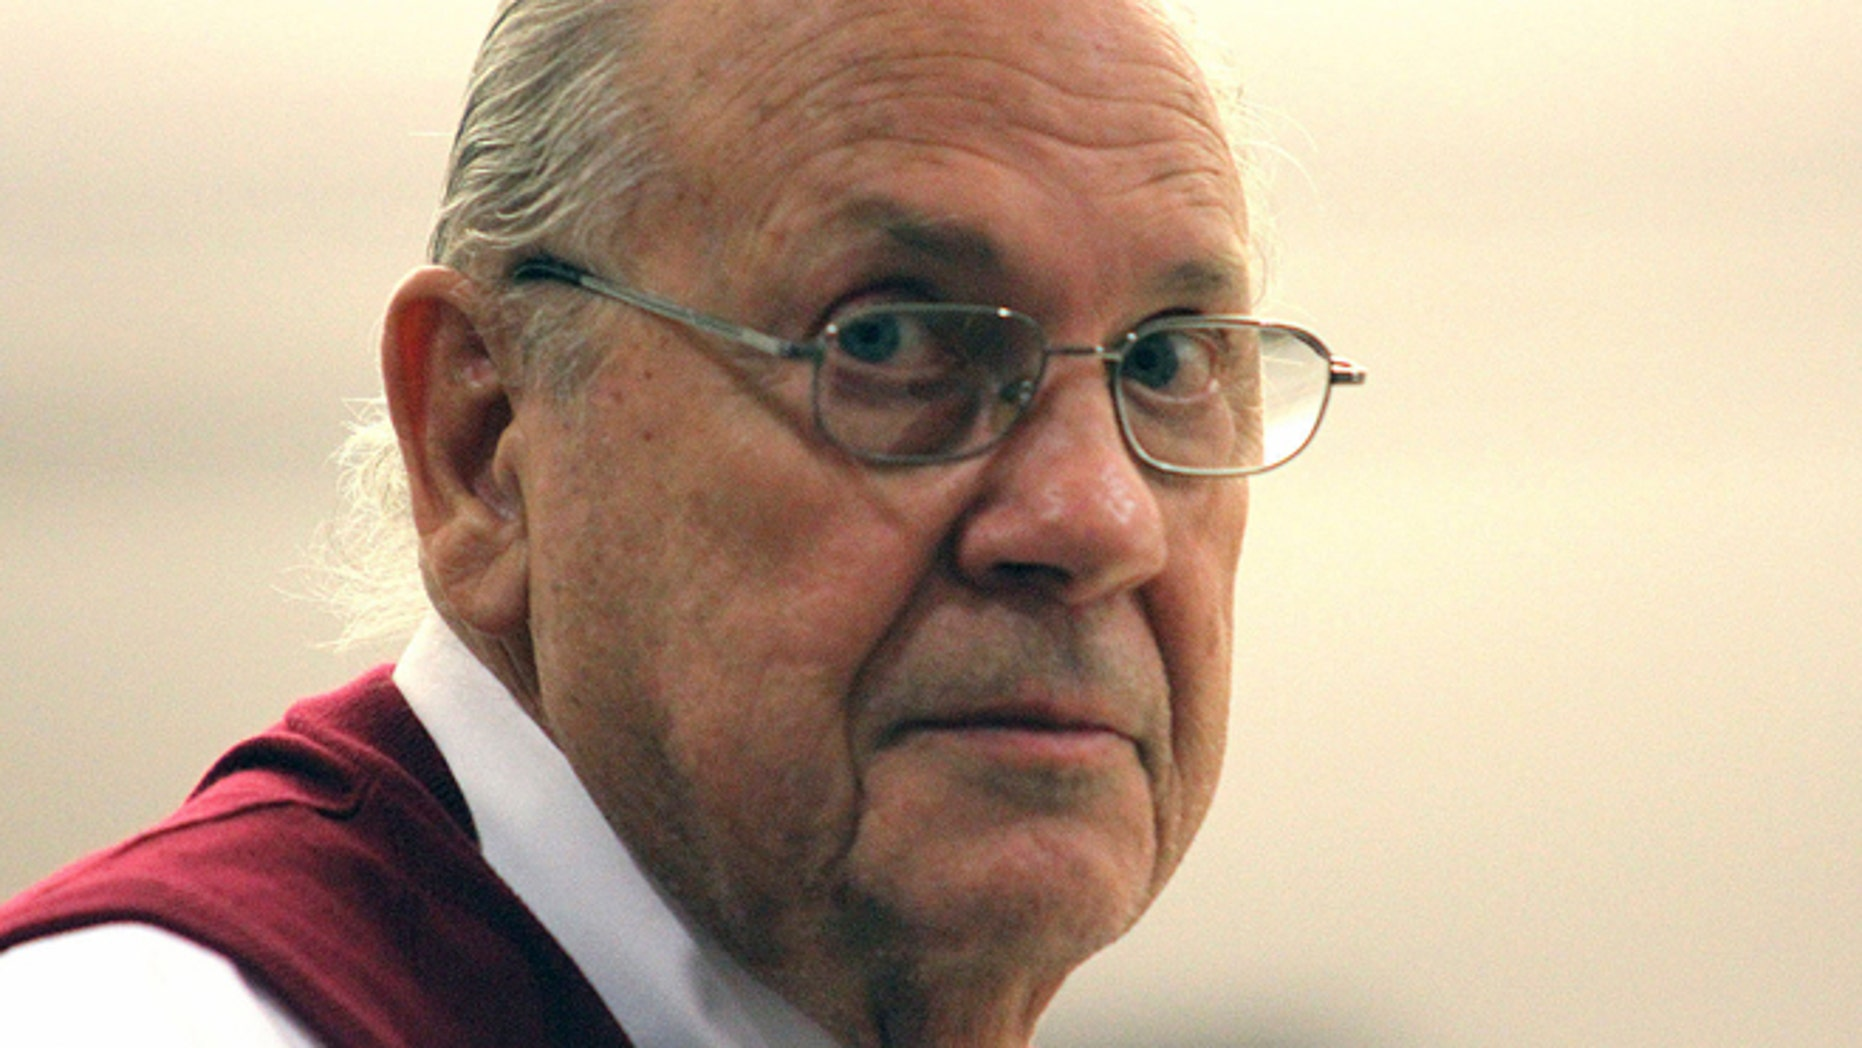 Feb. 5, 2014: Curtis Reeves Jr. looks into the gallery during his bail hearing in Dade City, Florida.